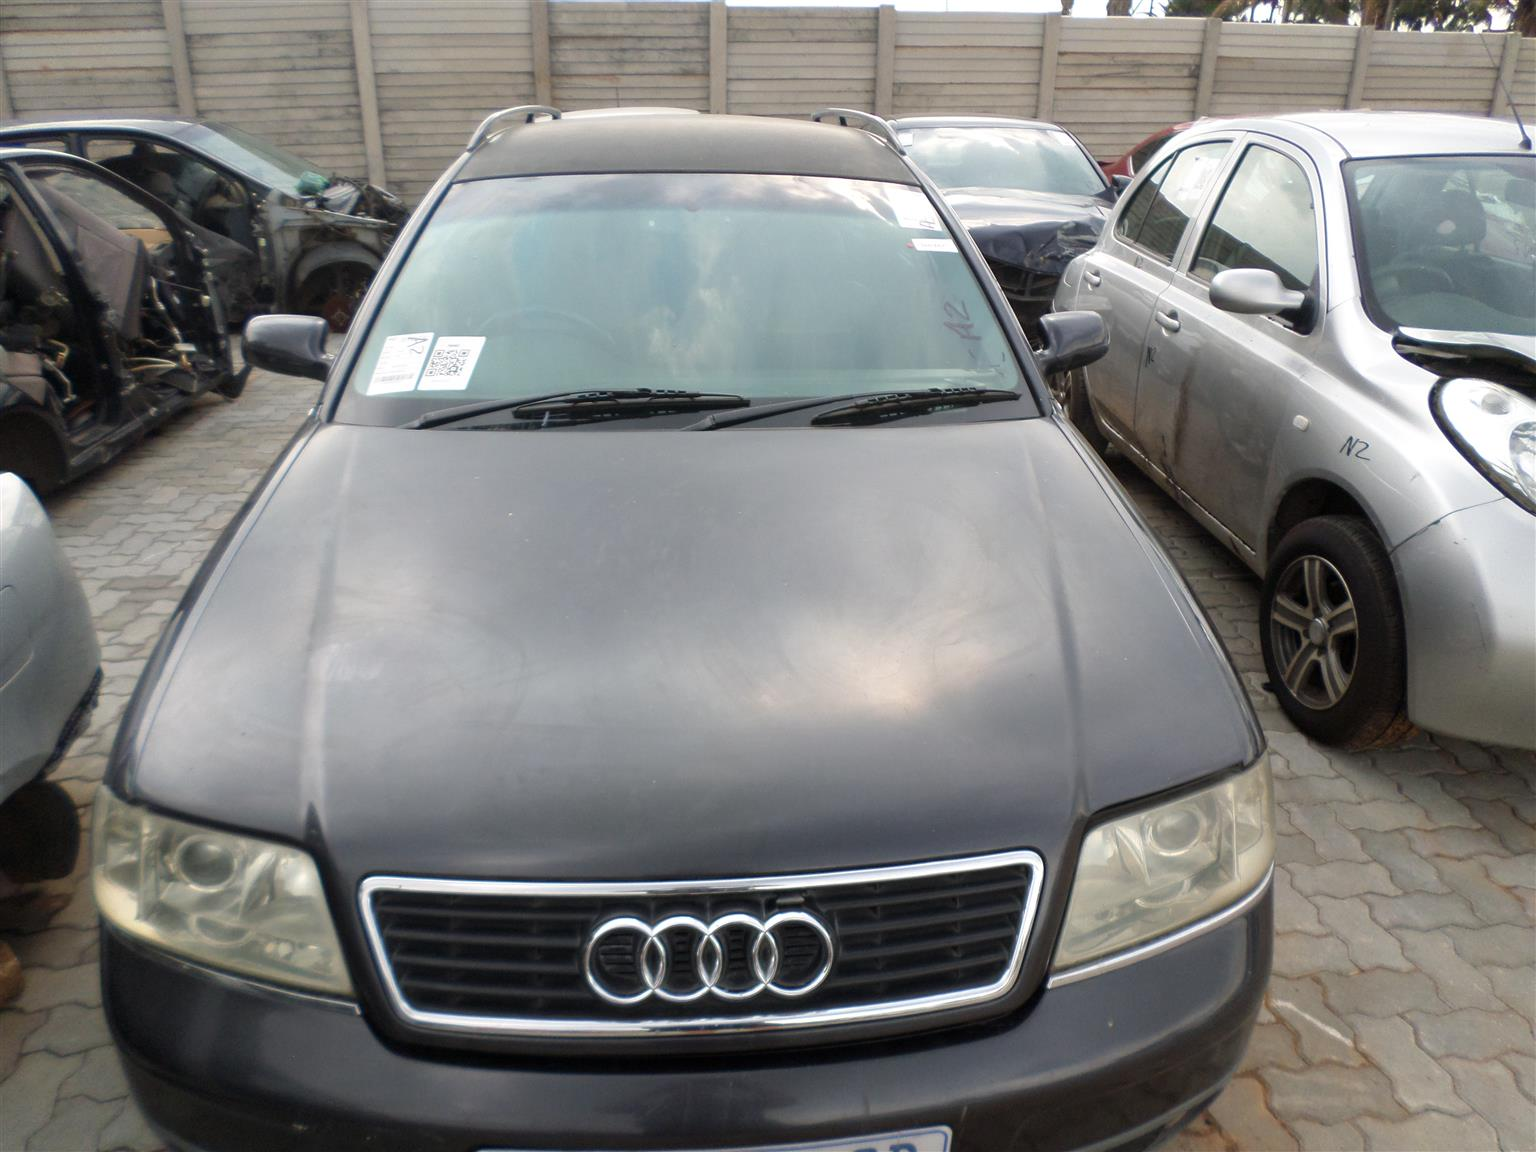 Audi A6 2.4 Avant tiptronic automatic 2001 stripping for all parts